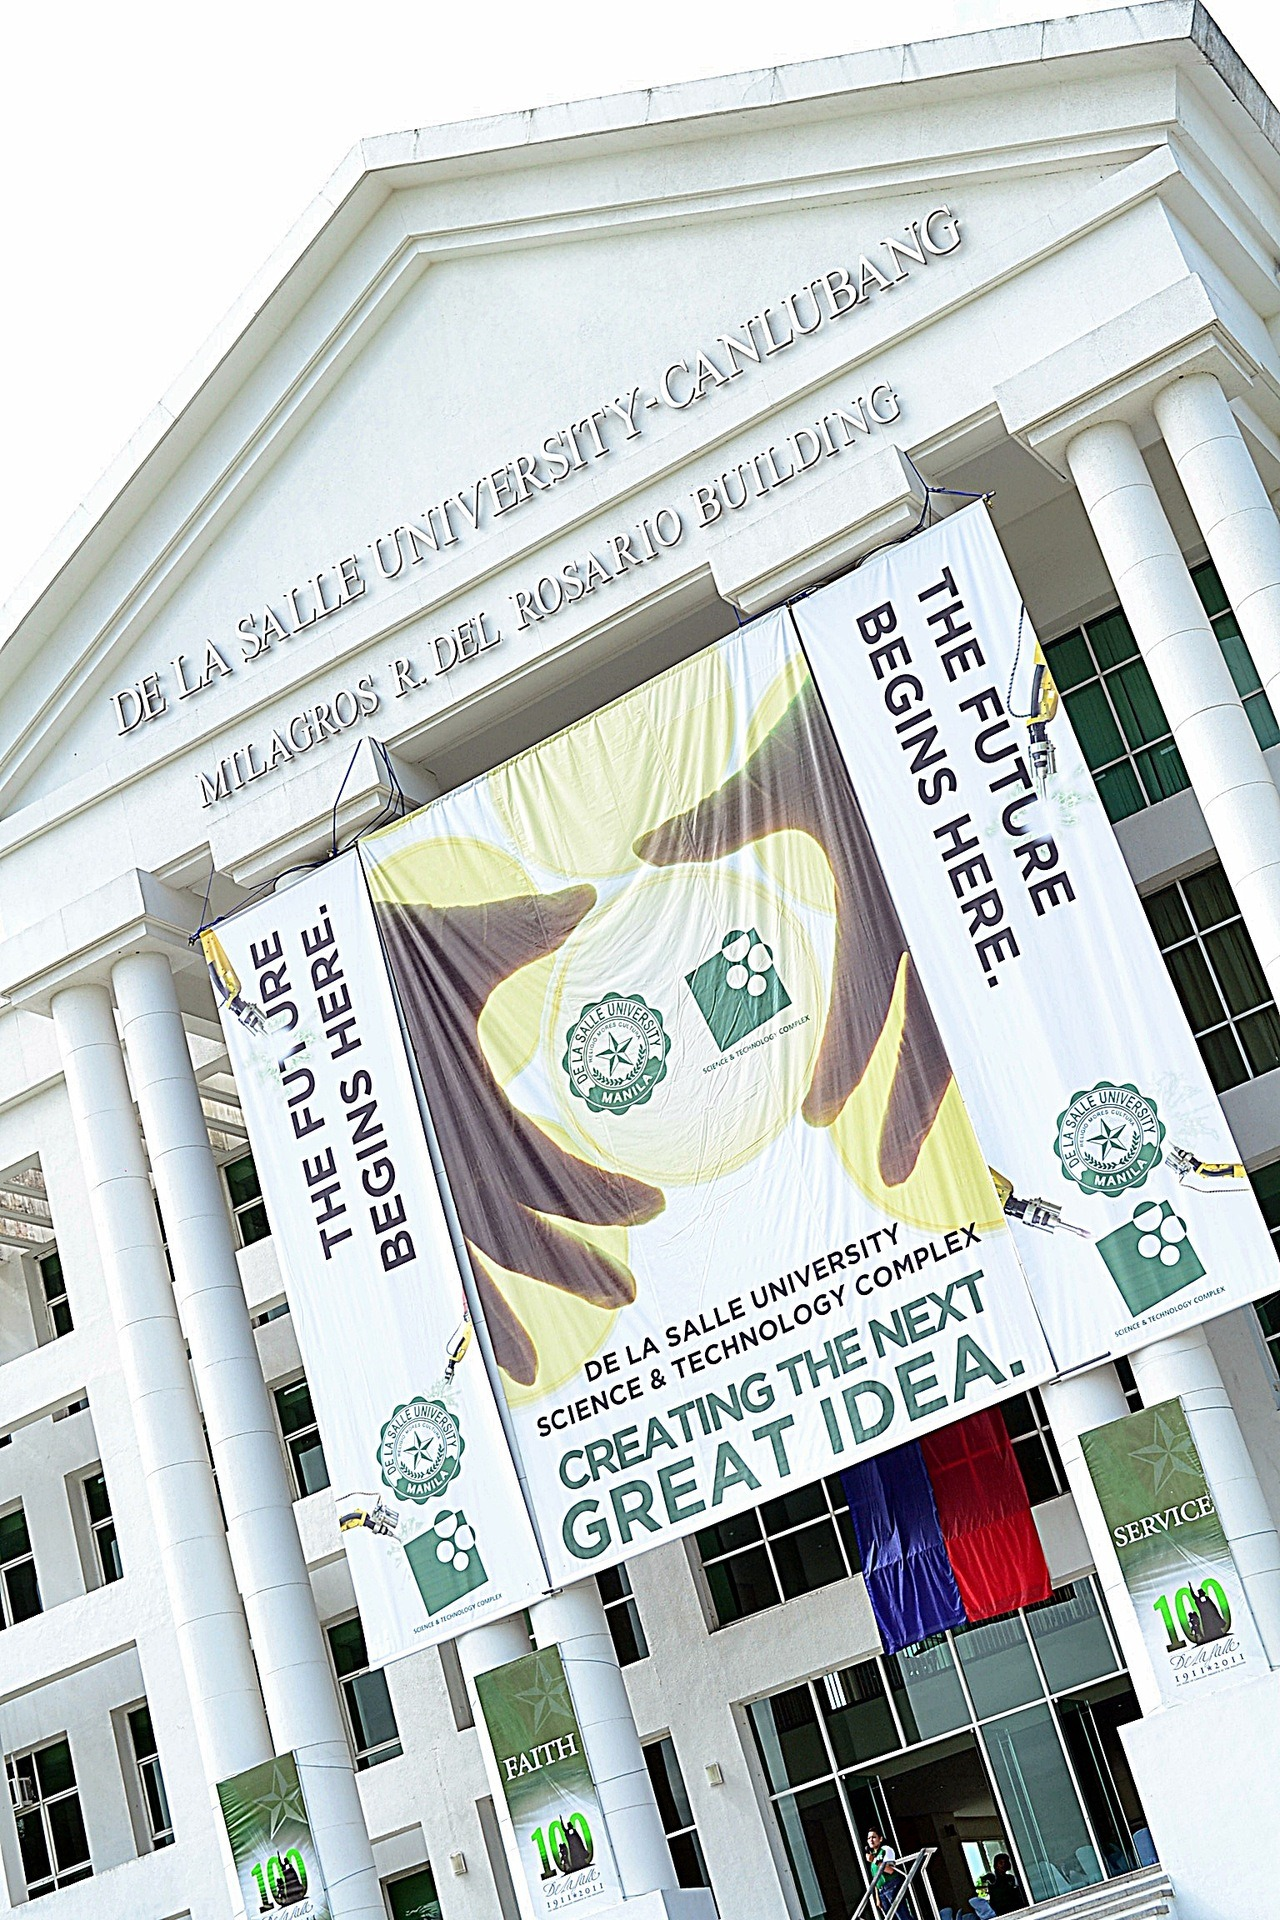 akosiramon:  CREATING THE NEXT GREAT IDEA. De La Salle University - Science and Technology Complex